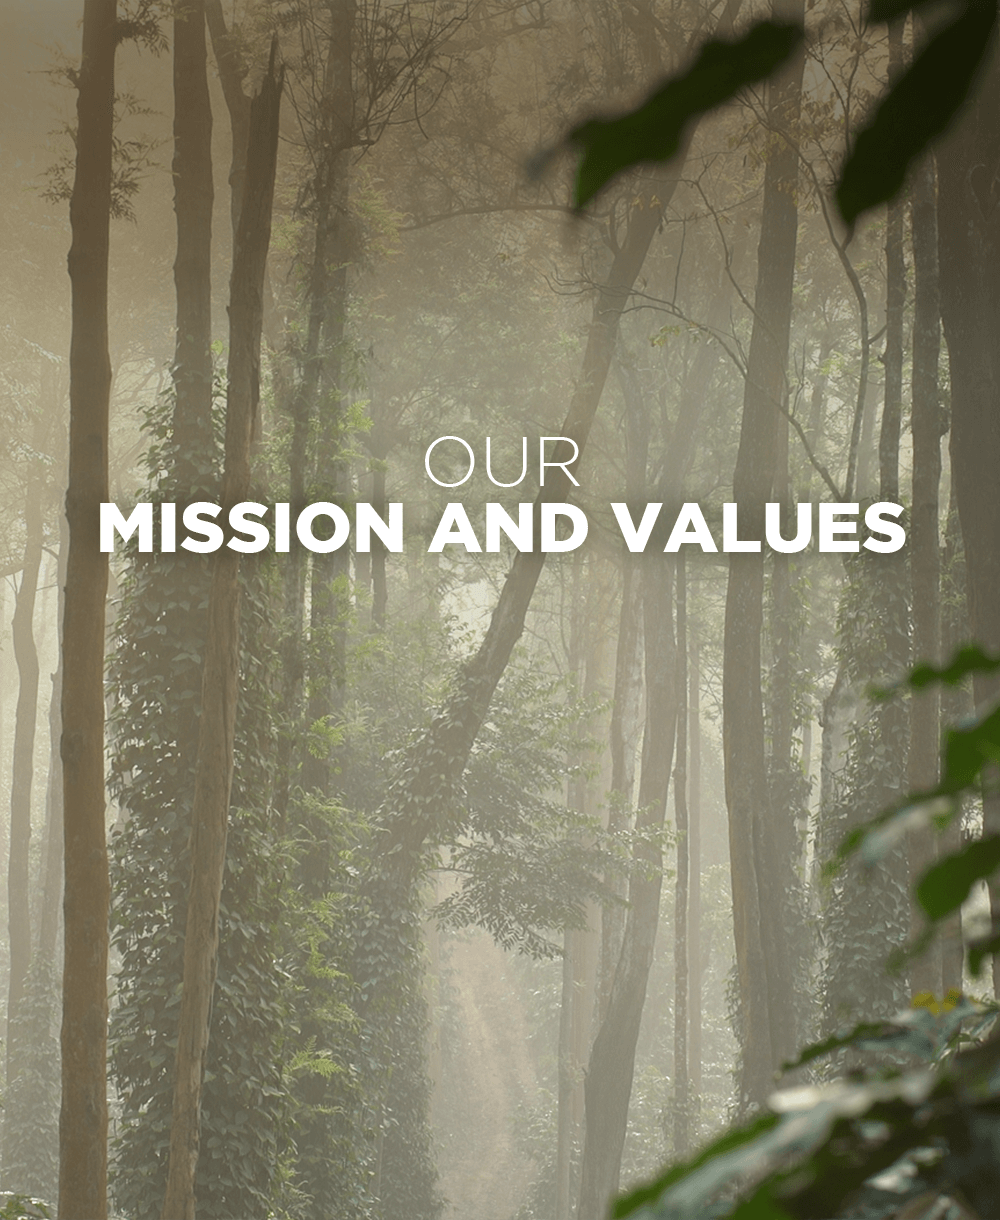 Our Mission Values  - Mobile s - Tata Coffee